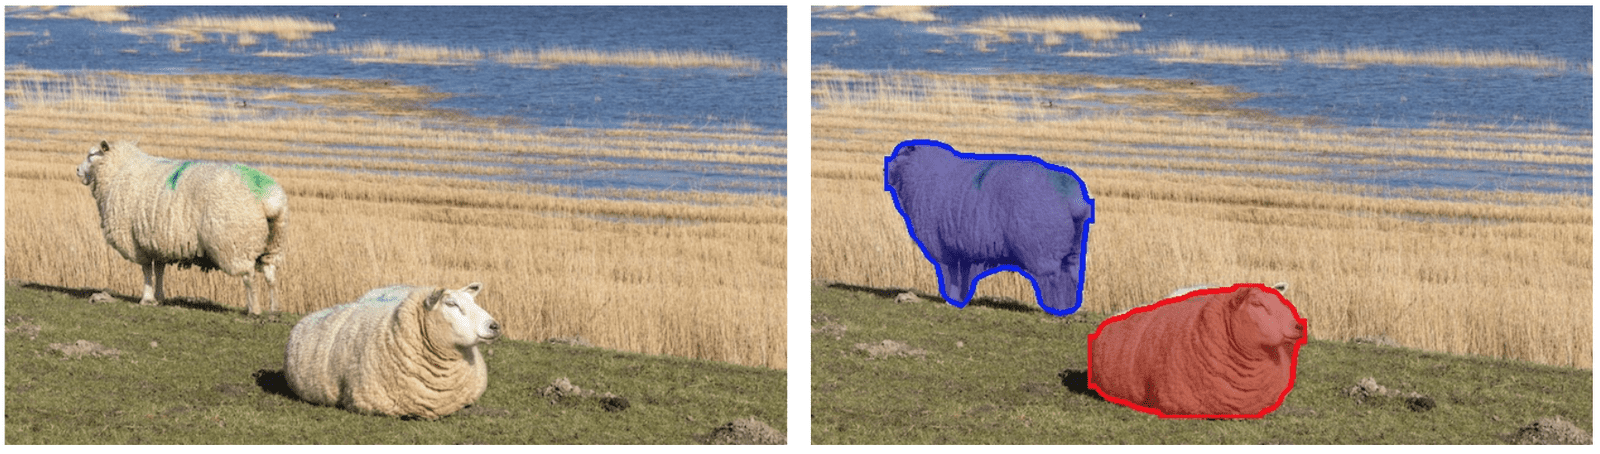 Deep learning based Object Detection and Instance Segmentation using